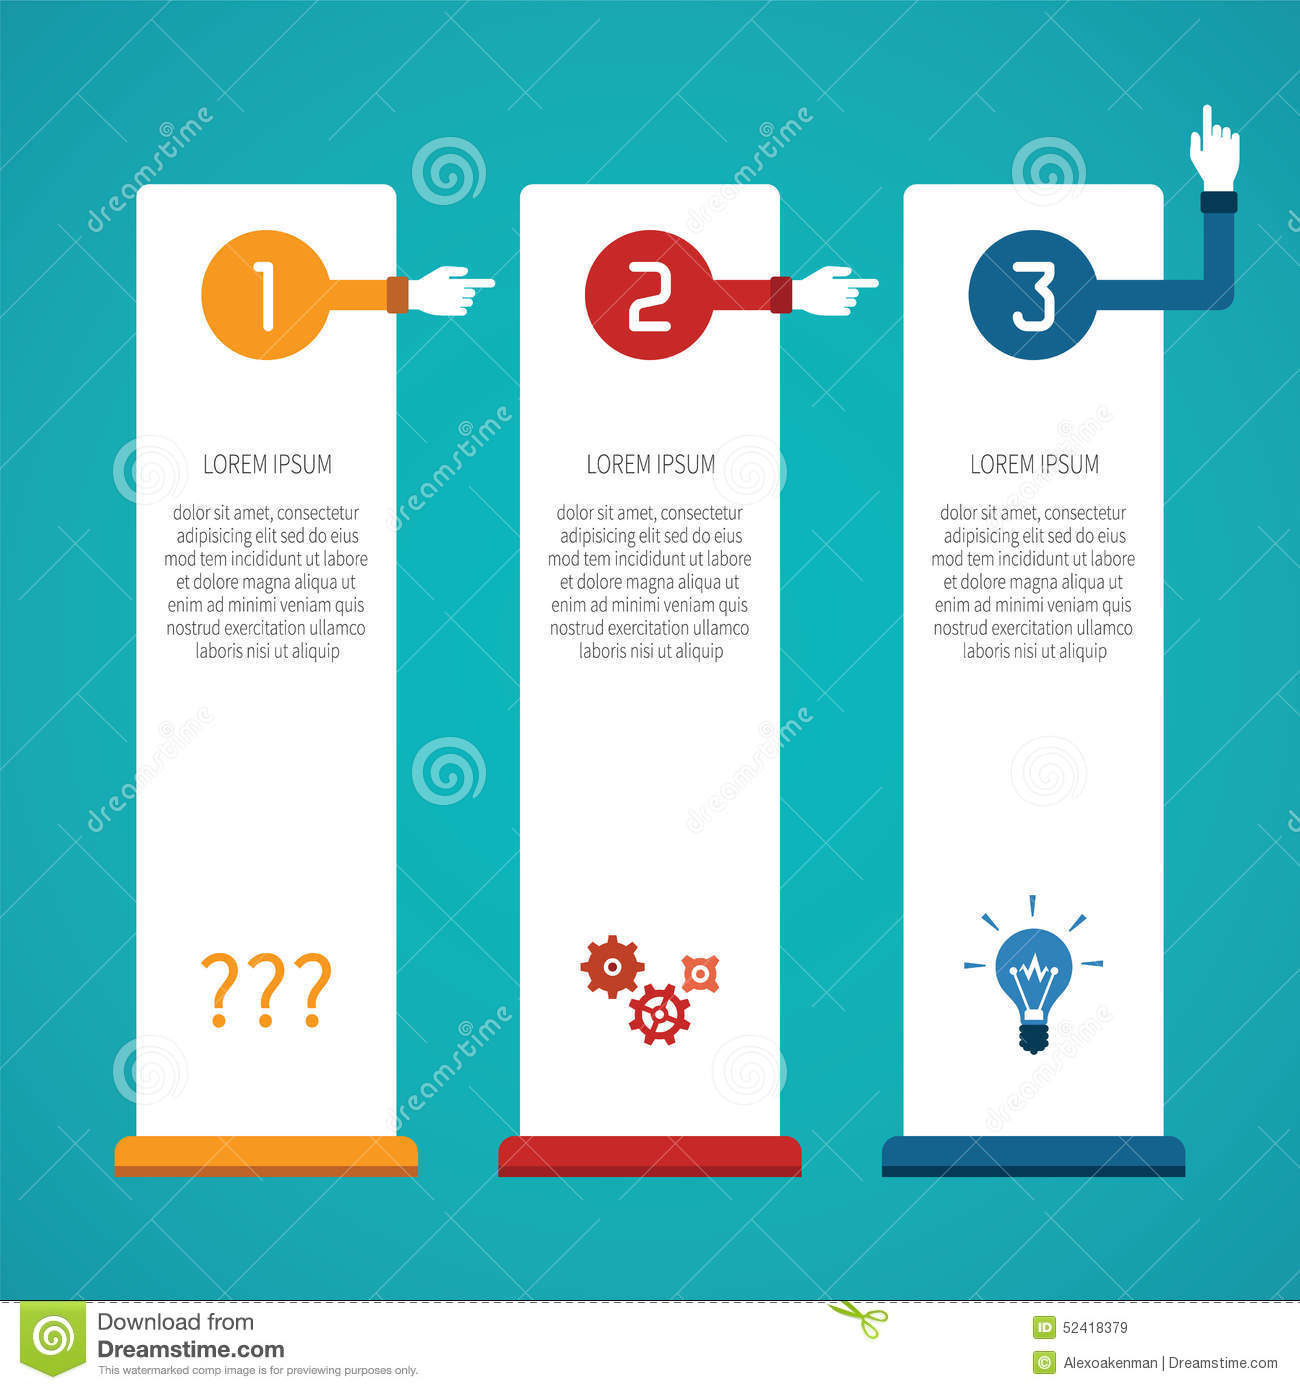 download abstract vector 3 steps infographic template in flat style for layout workflow scheme numbered